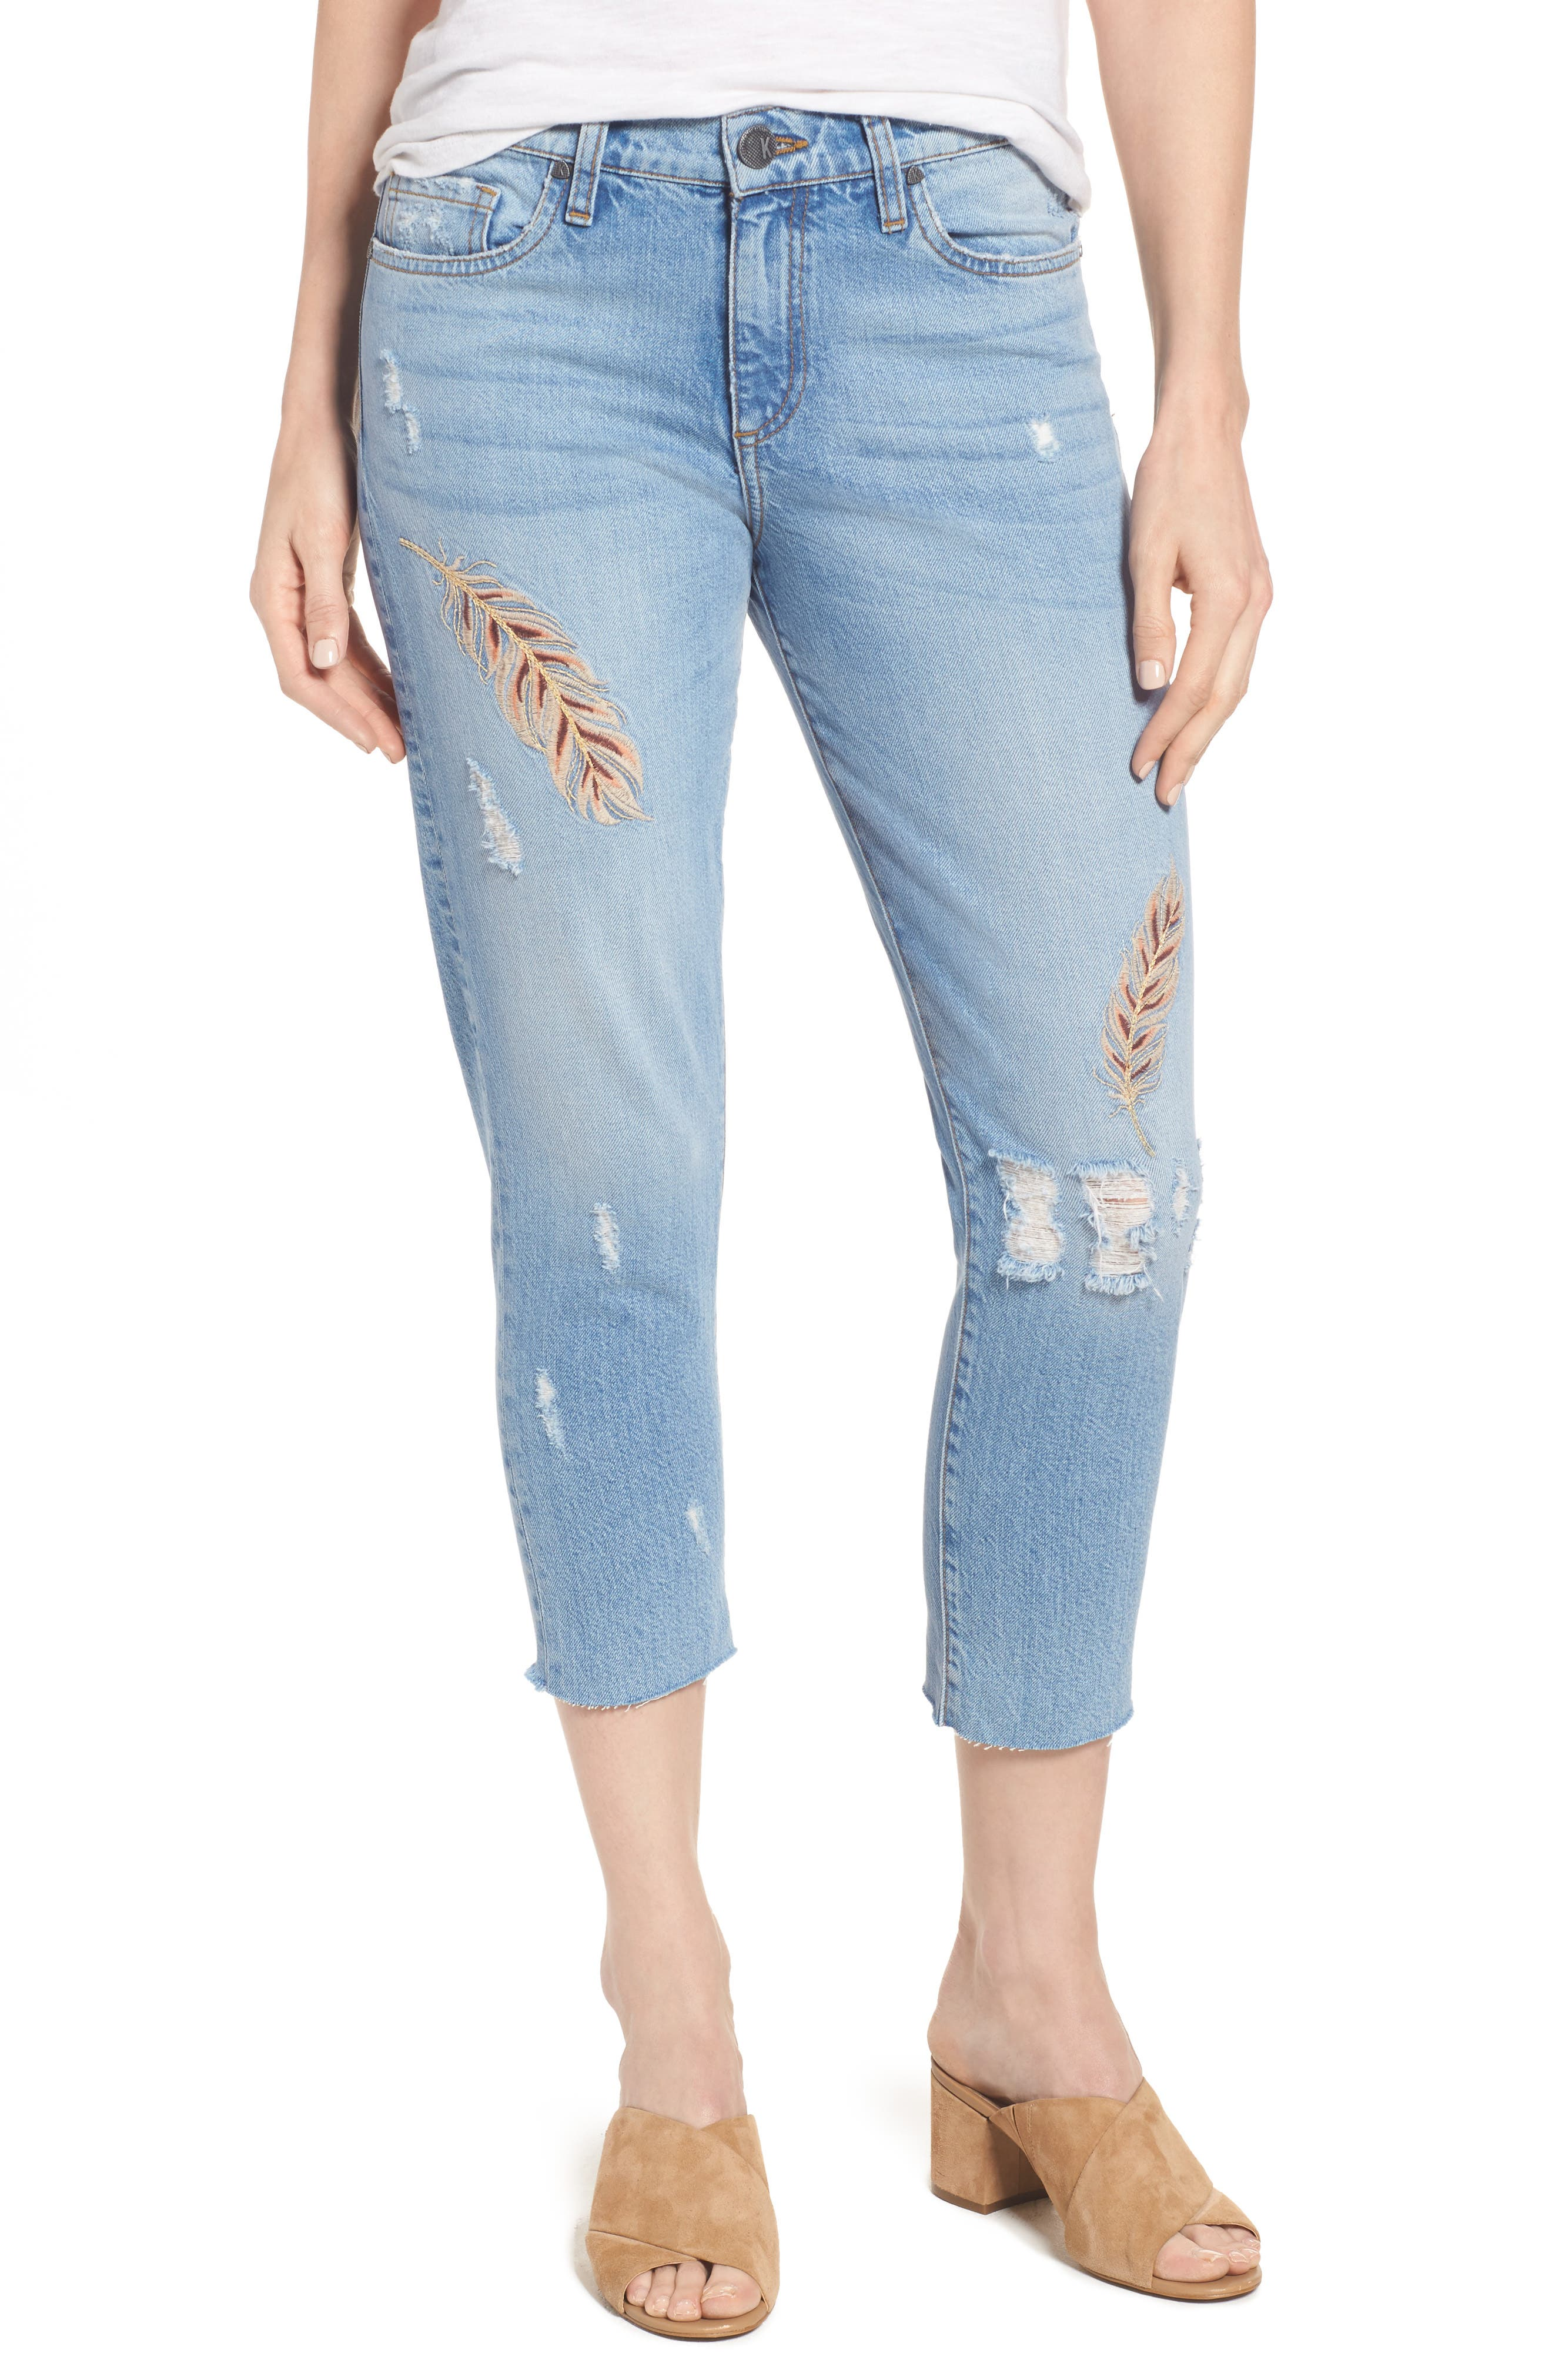 Alternate Image 1 Selected - KUT from the Kloth Allie Crop Boyfriend Jeans (Kingly)